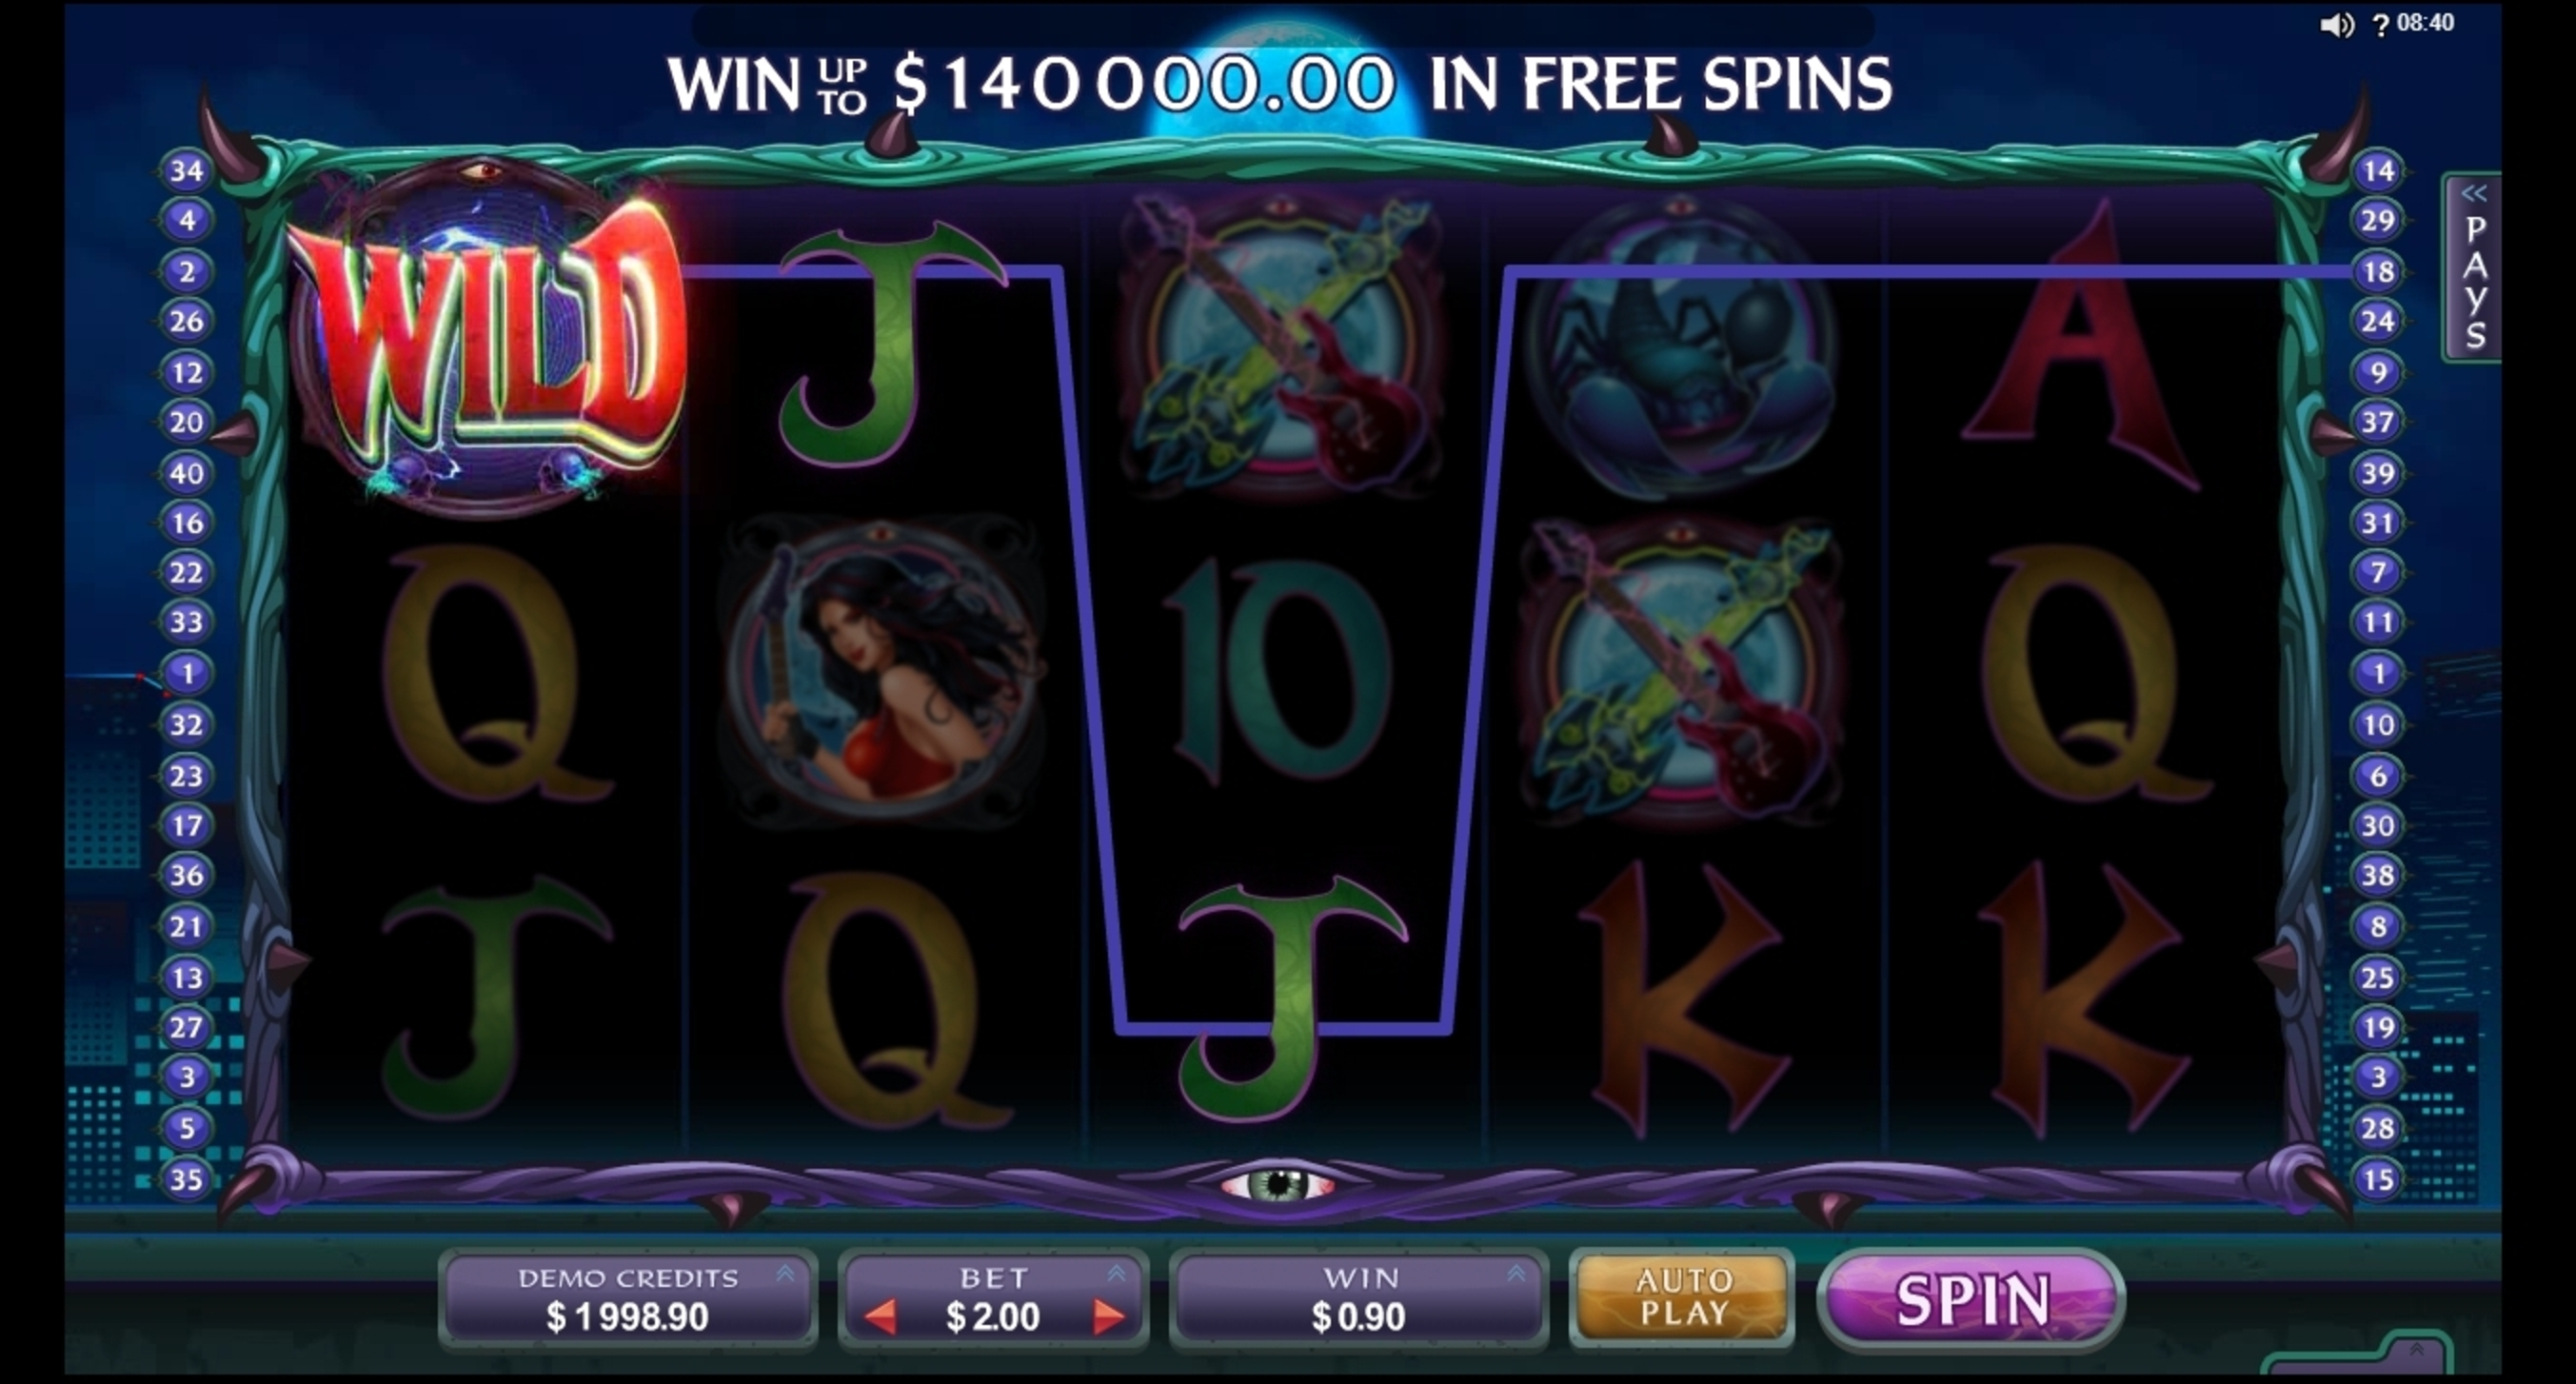 Win Money in Electric Diva Free Slot Game by MahiGaming